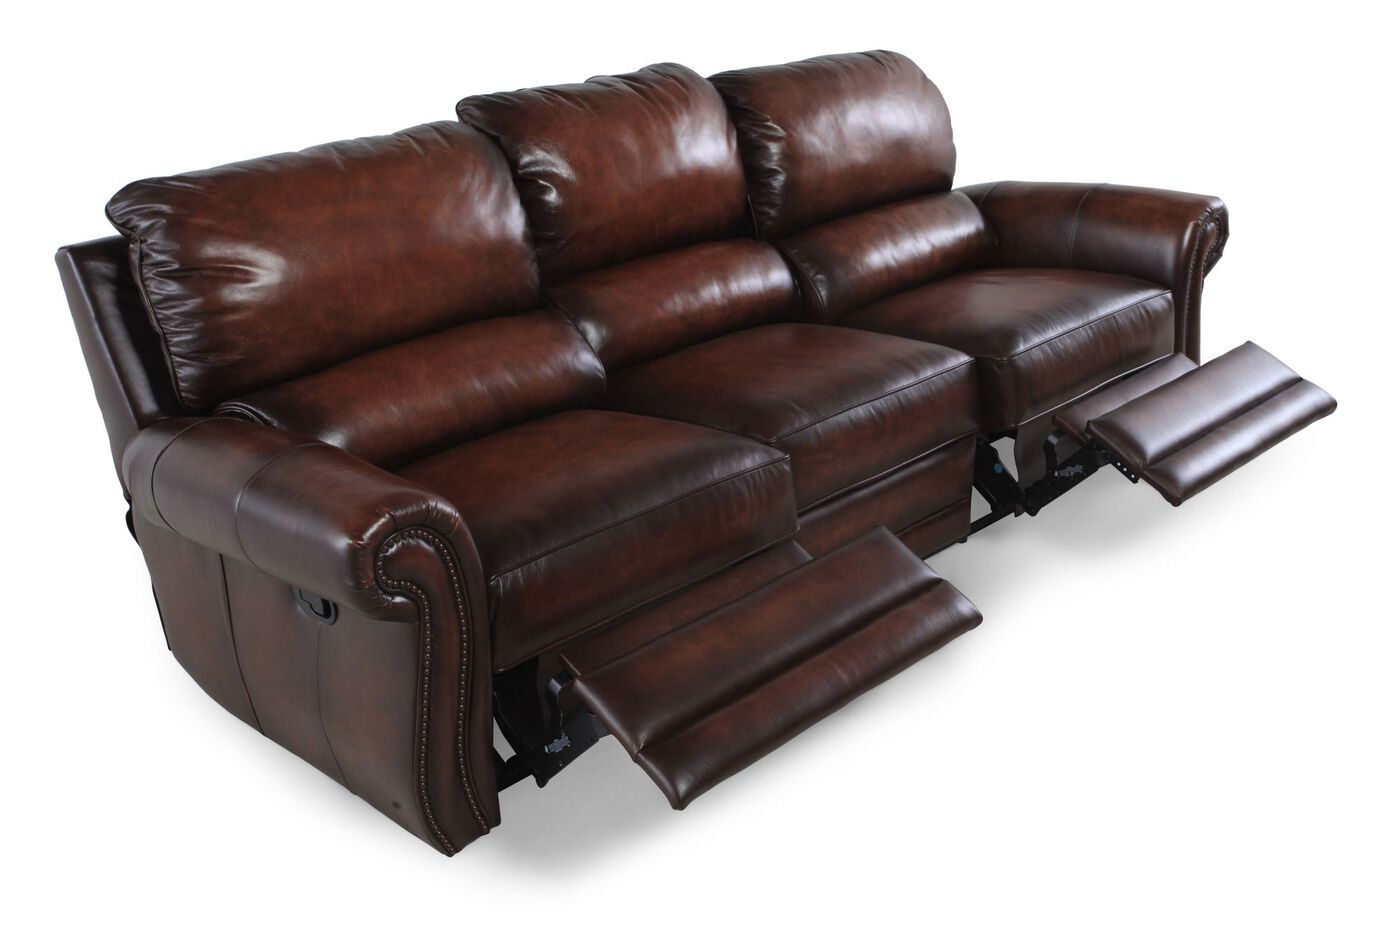 bernhardt reese double reclining leather sofa mathis brothers furniture. Black Bedroom Furniture Sets. Home Design Ideas